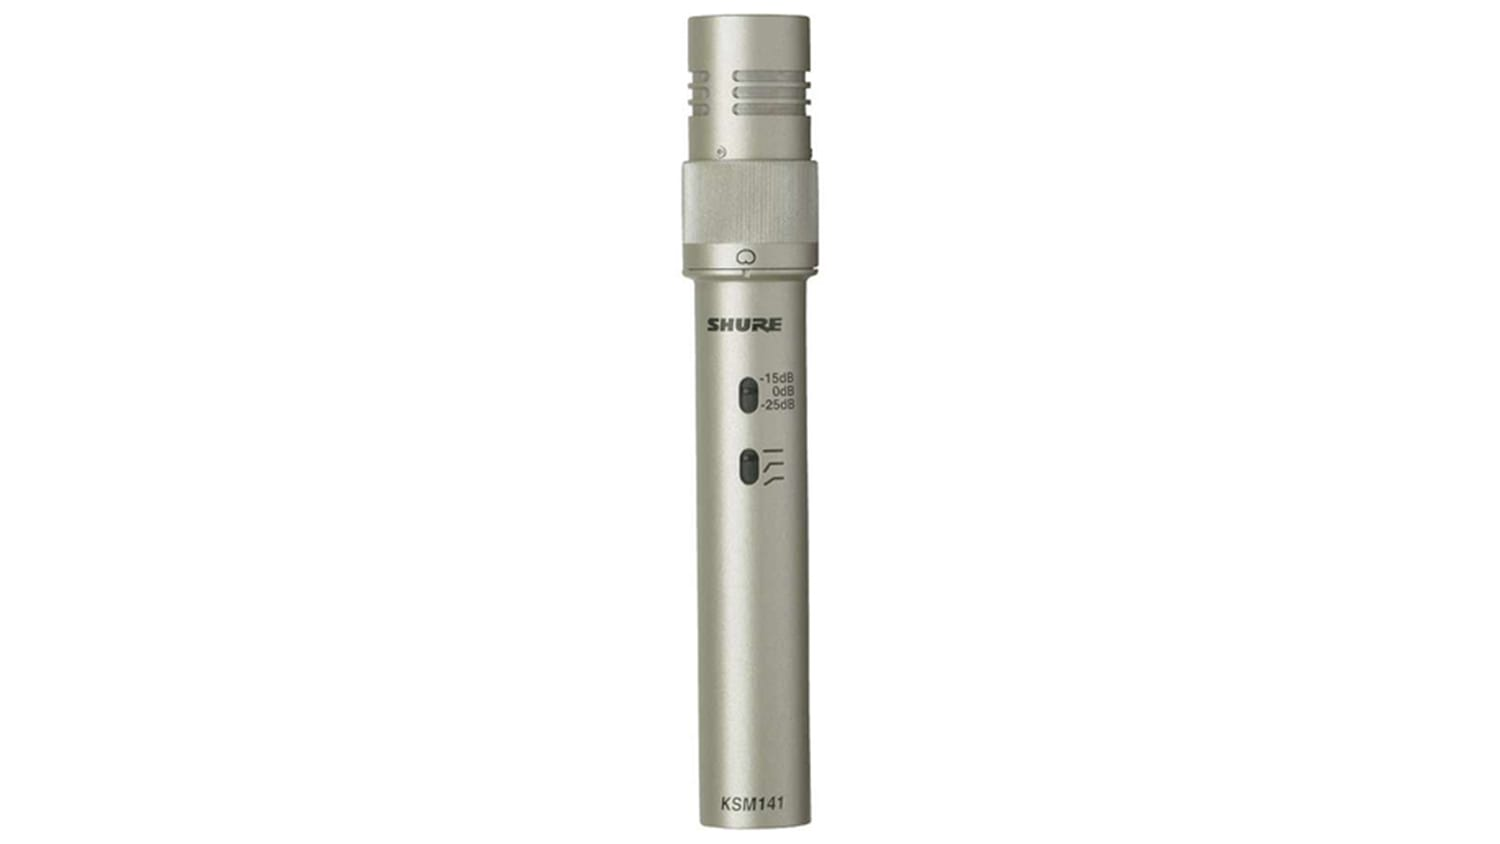 shure ksm141 small diaphragm condenser microphone